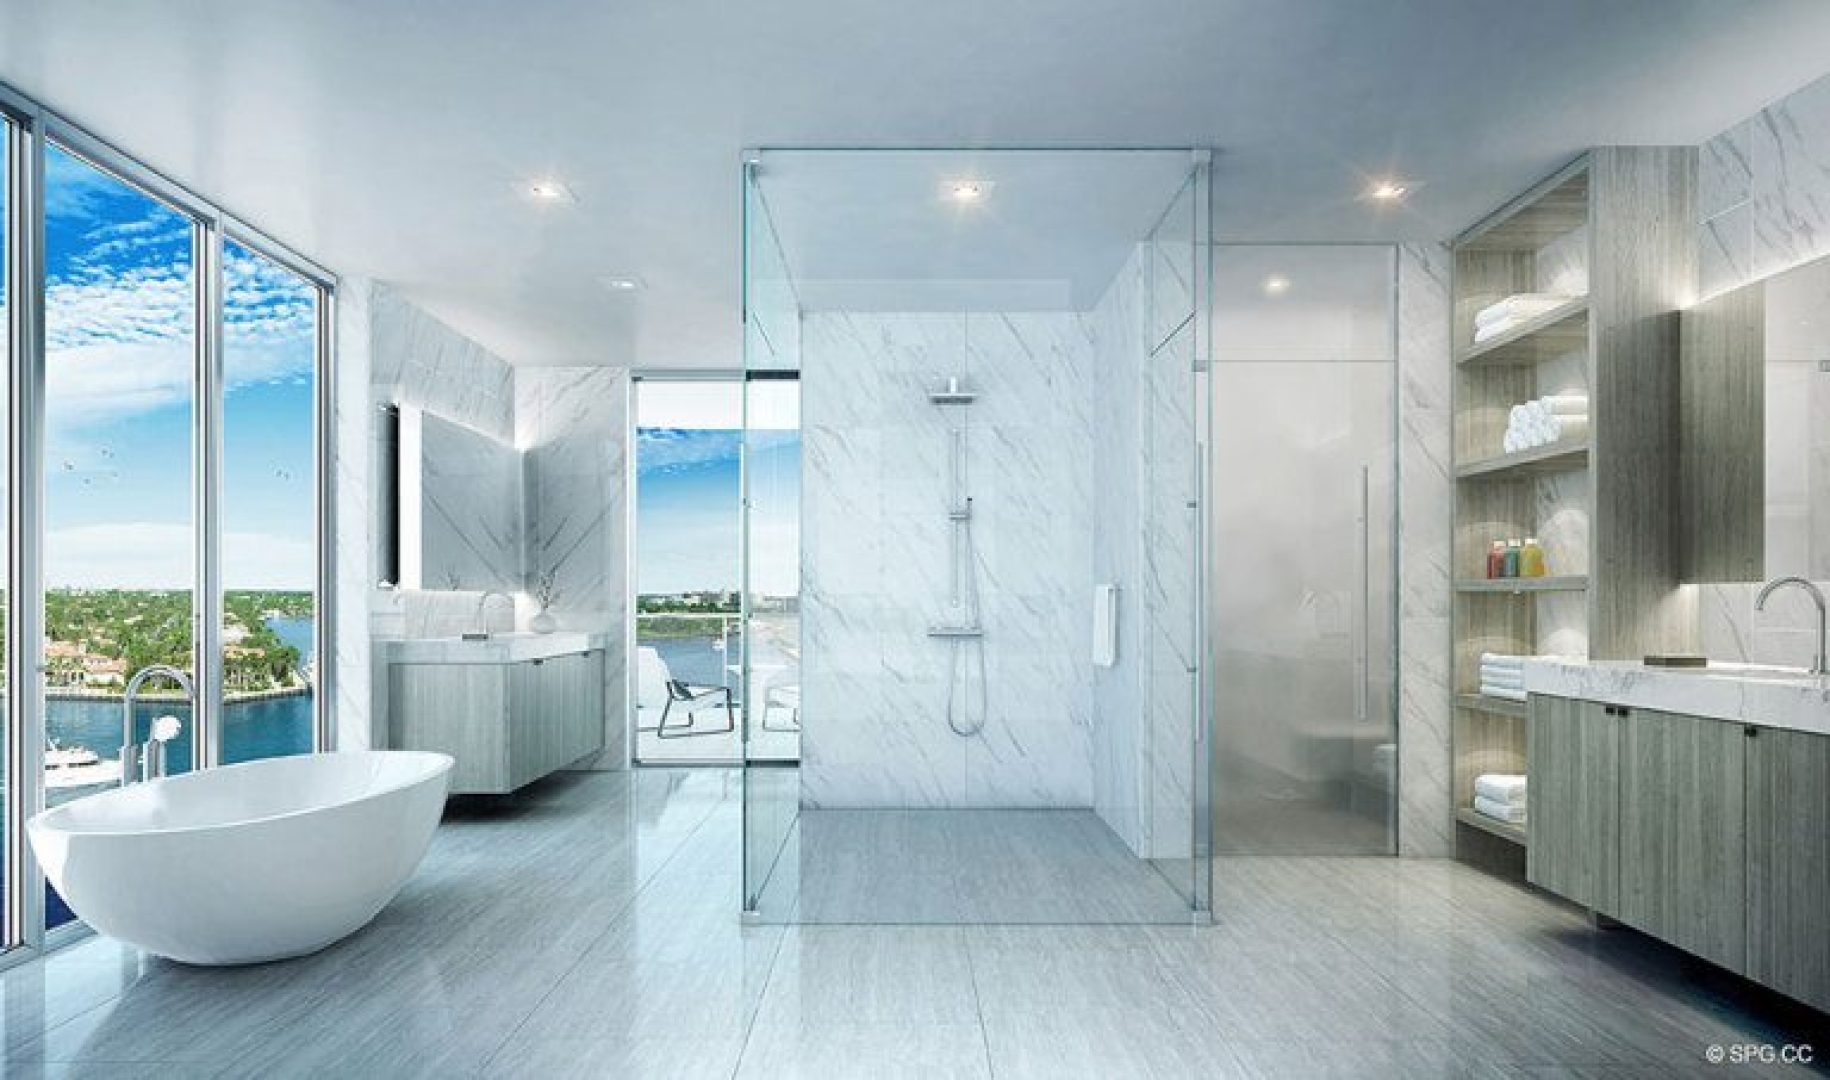 Master Bathroom inside 321 at Water's Edge, Luxury Waterfront Condos in Fort Lauderdale, Florida 33304